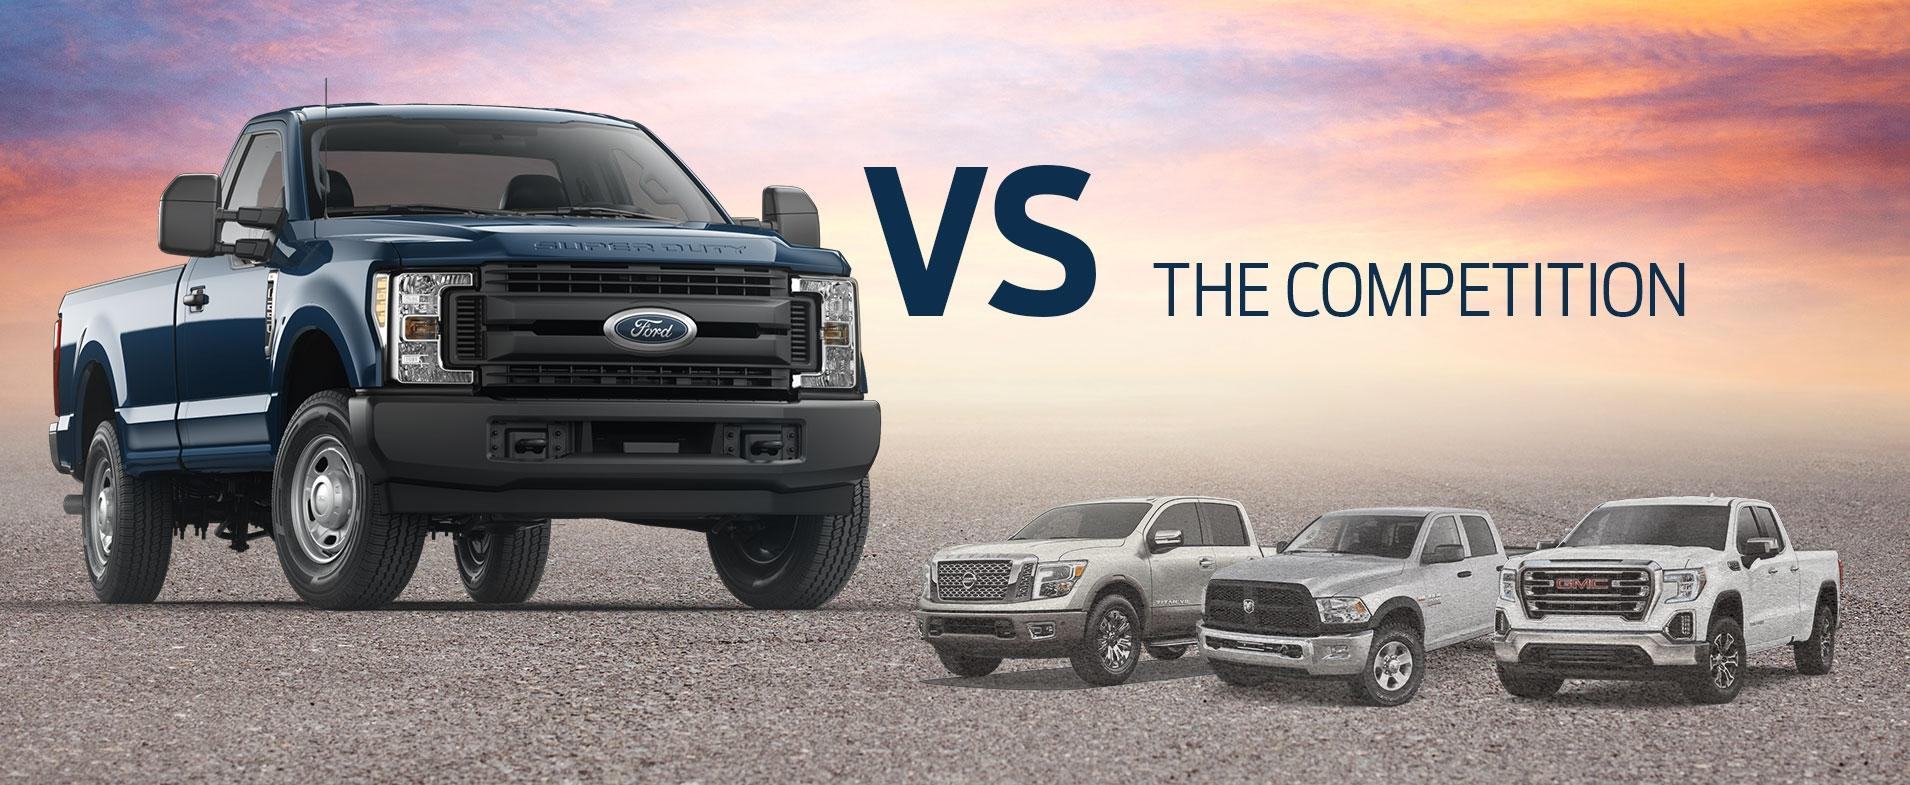 Super Duty vs Competition